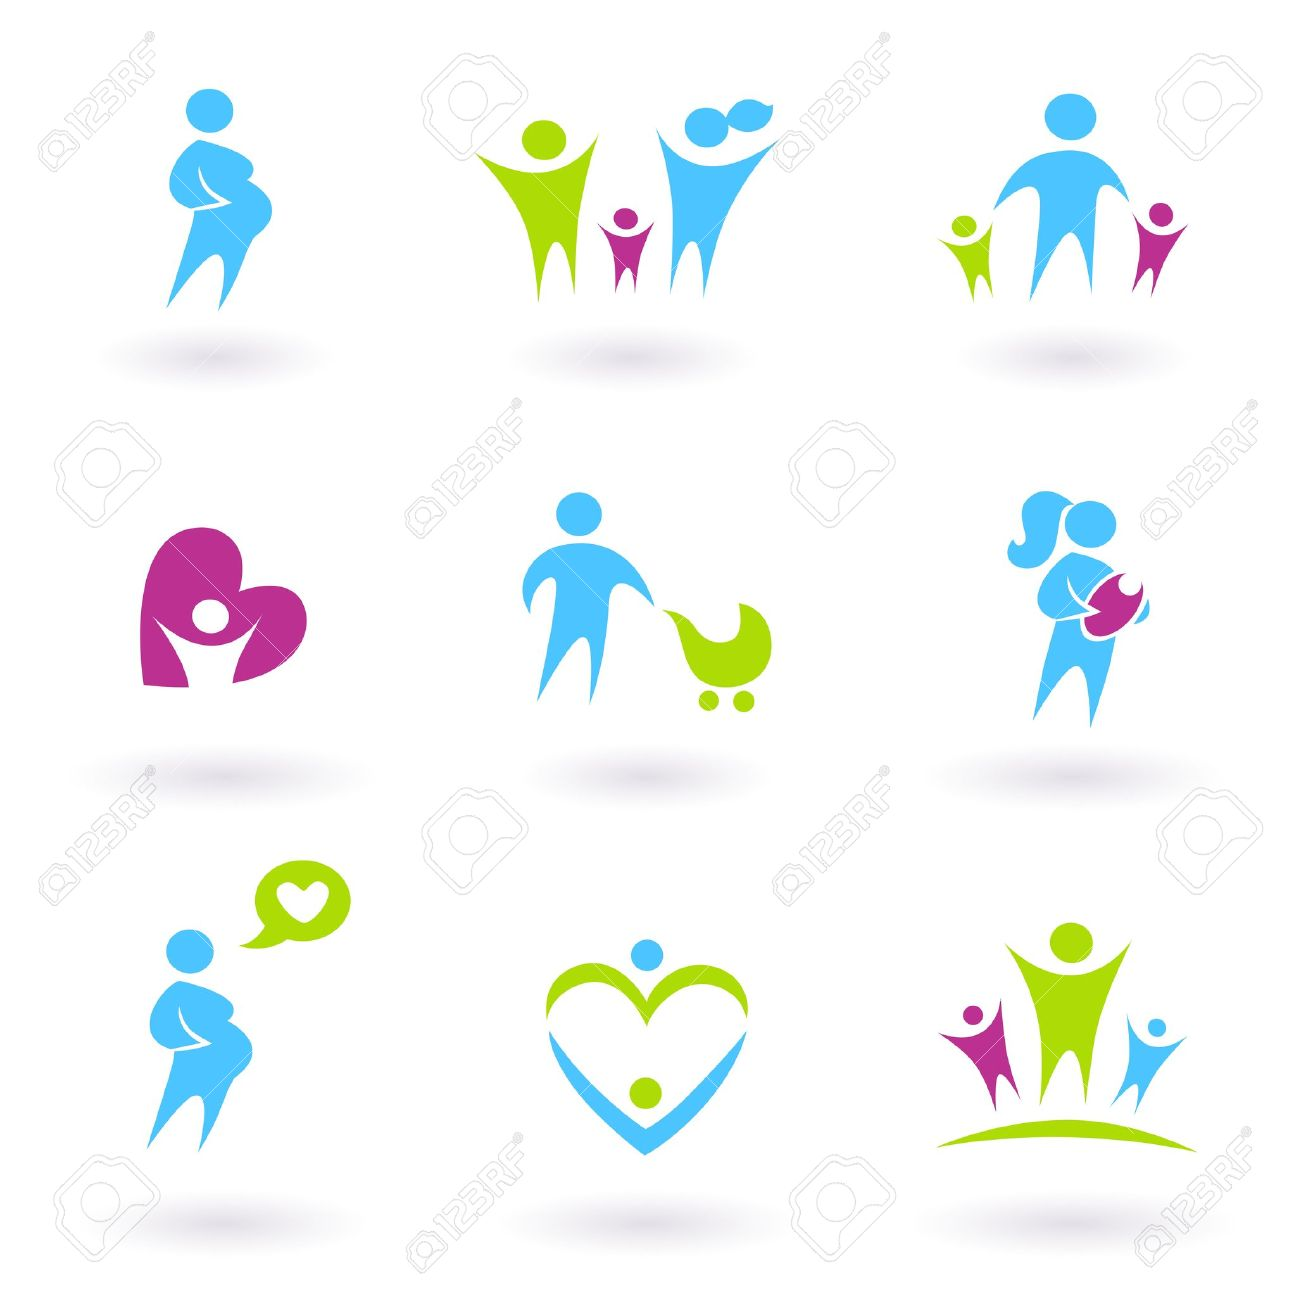 Icon collection - Family, Pregnancy and Parenthood - blue and green Stock Vector - 10445354